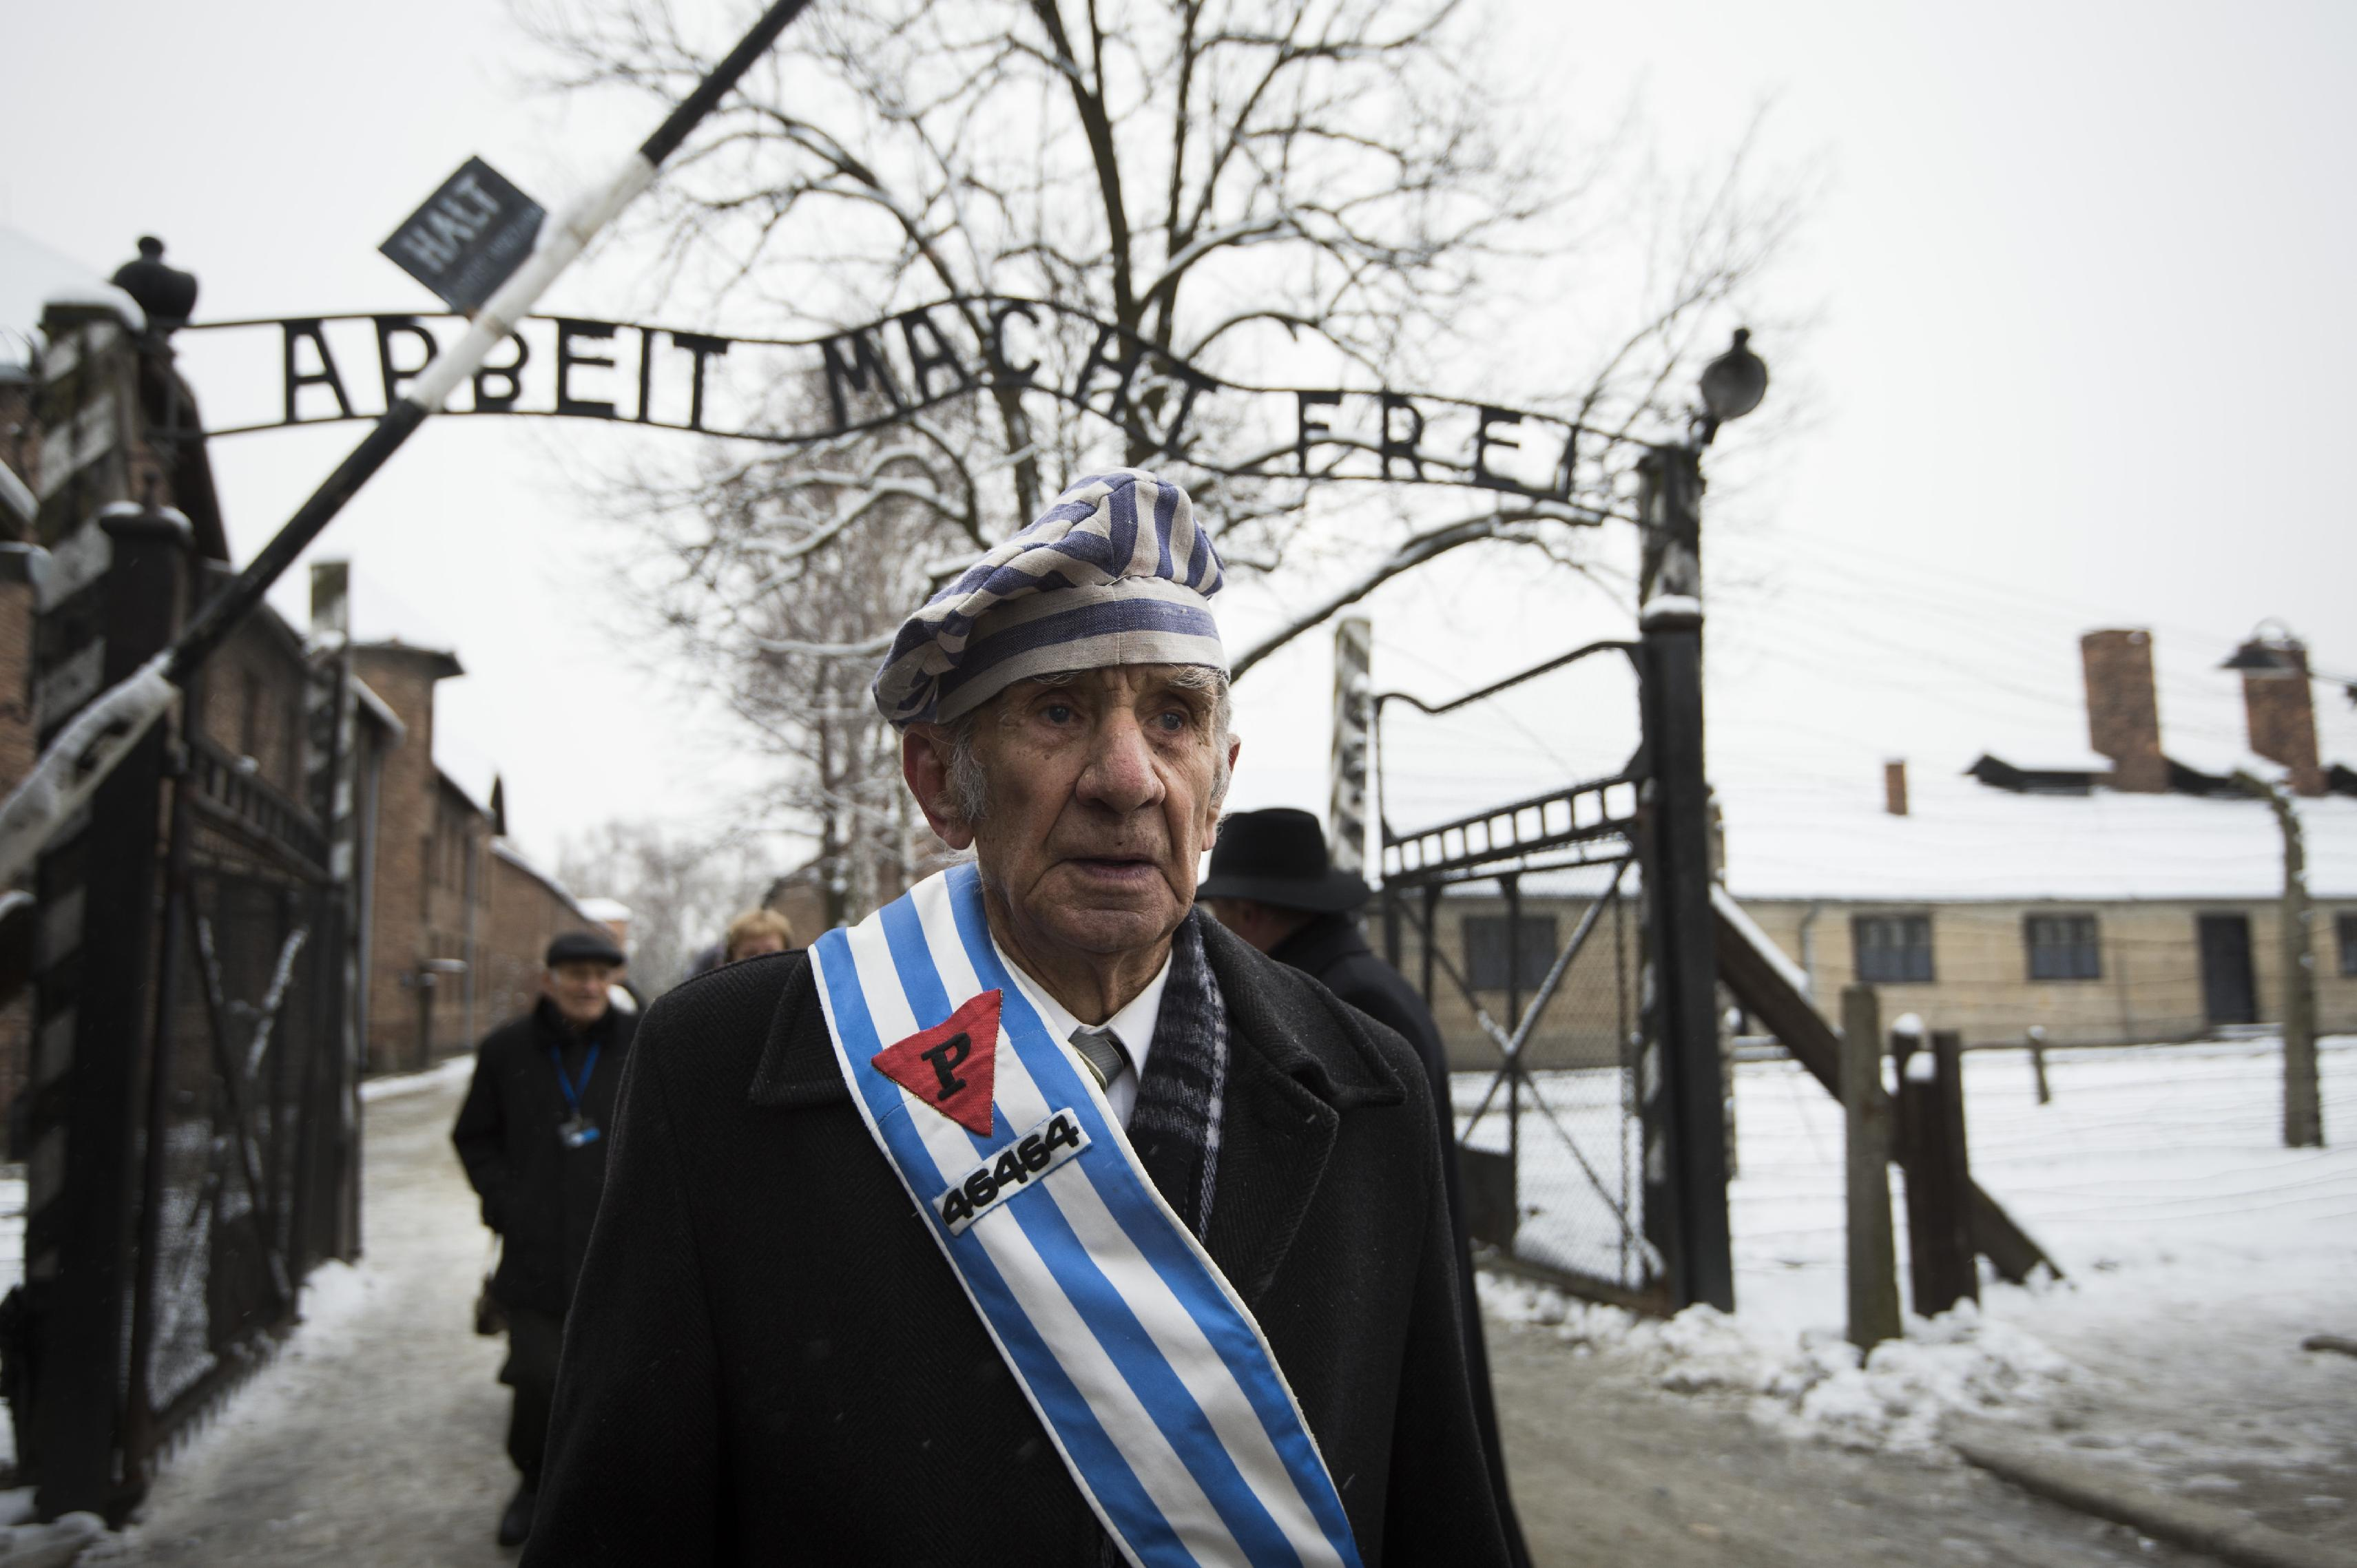 Survivors return to Auschwitz as leaders warn of anti-Semitism